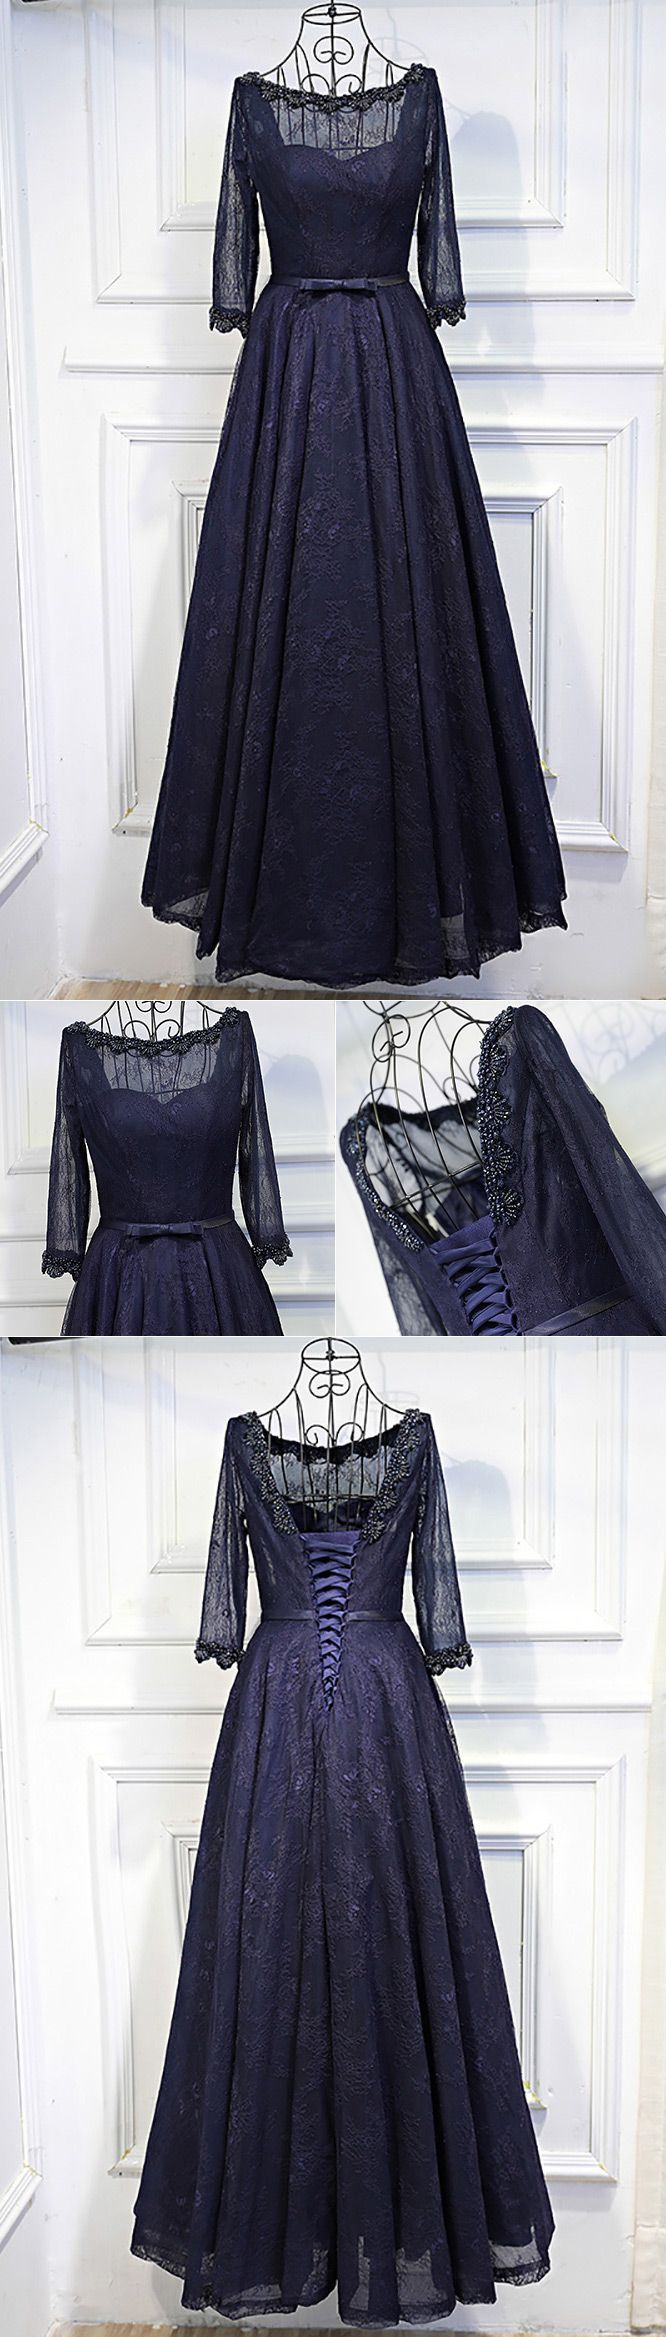 Vintage sleeve navy blue long prom dress lace with corset back